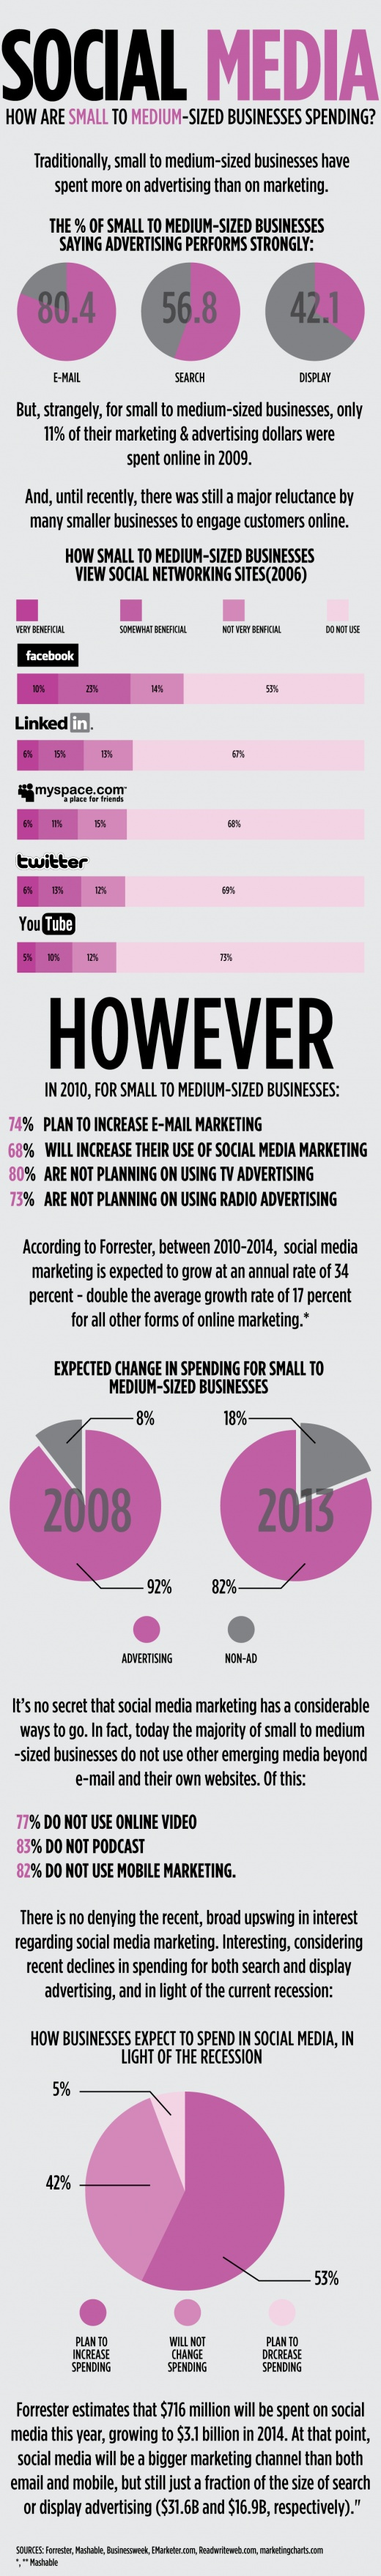 How Are Small to Medium-Sized Businesses Spending on #SocialMedia? [#Infographic] #sme #smb